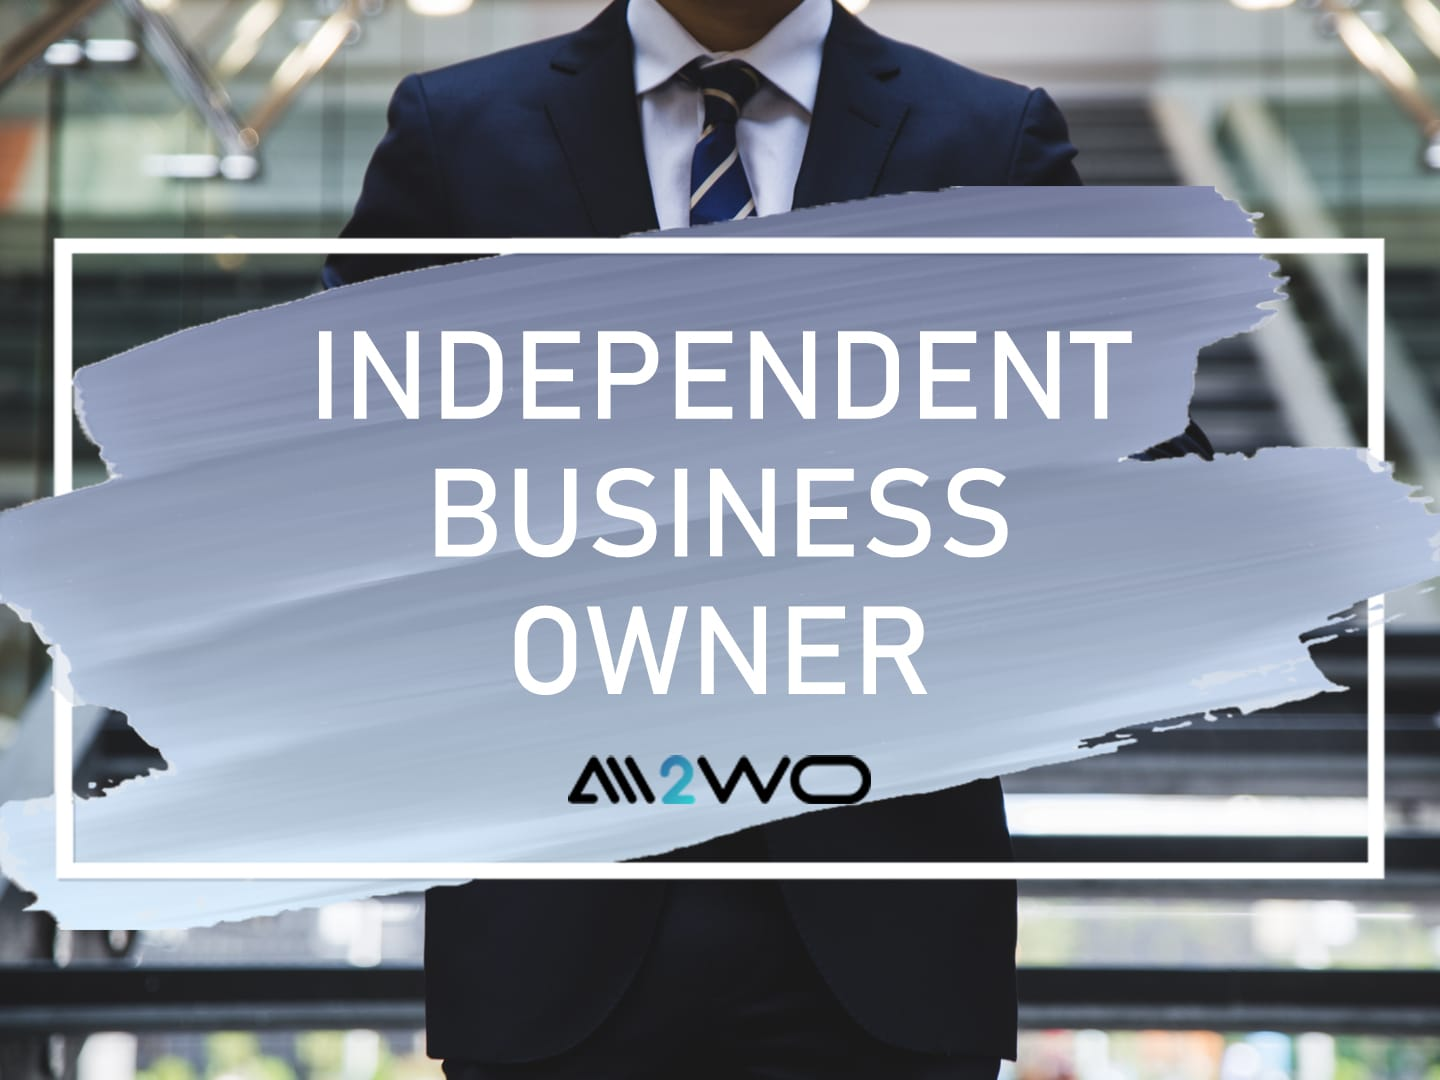 how-to-become-independent-business-owner-with-ali2woo